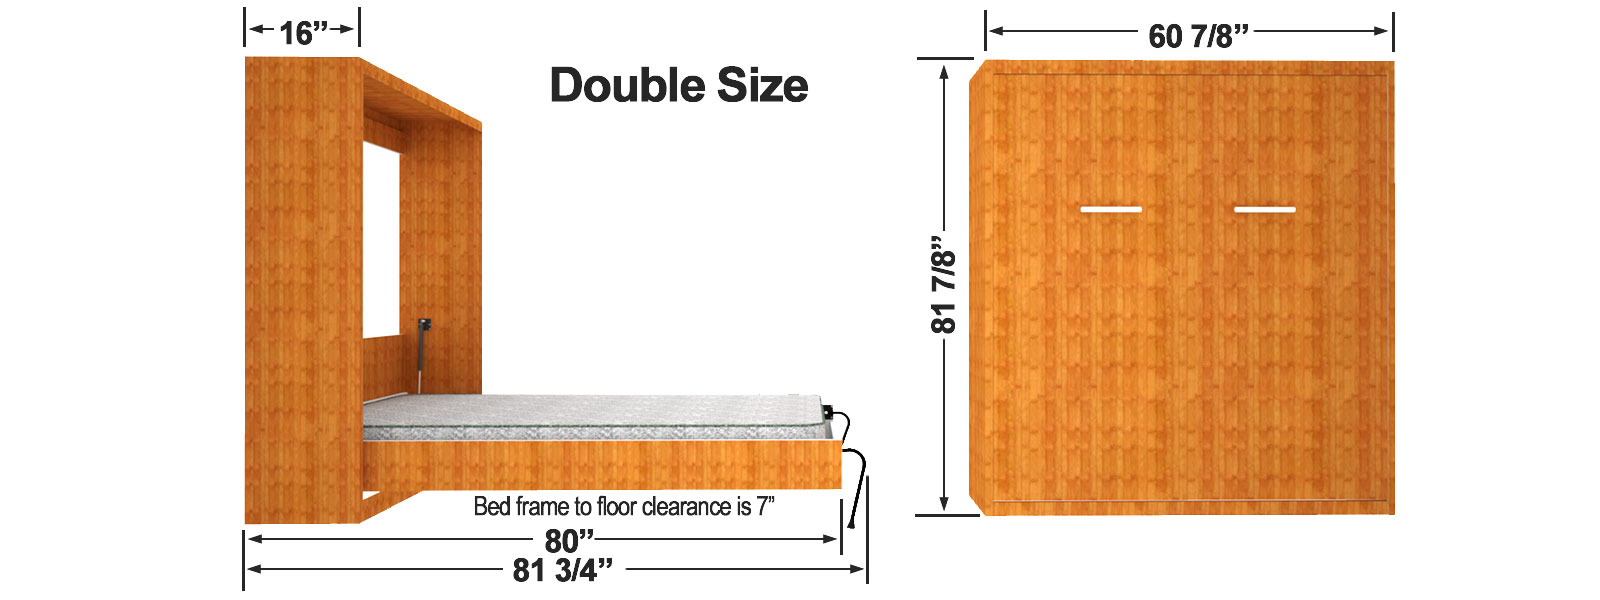 Twin Mattress Size In Inches